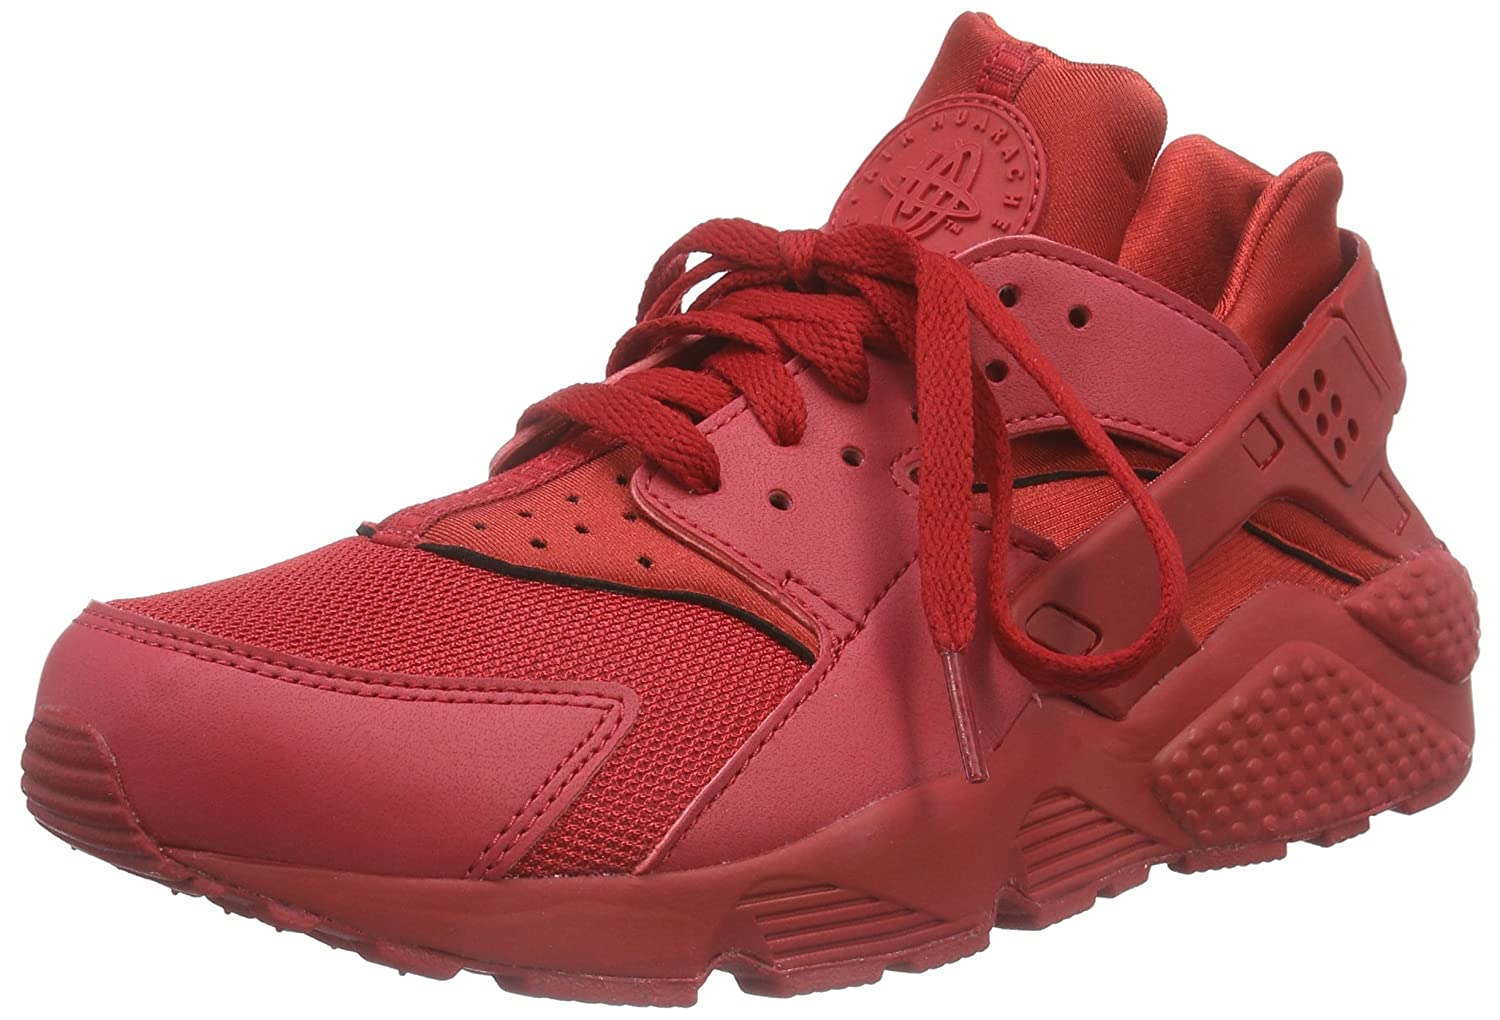 bfd2414a9332c Amazon.com  Nike Men s Air Huarache Running Shoe  Nike  Shoes